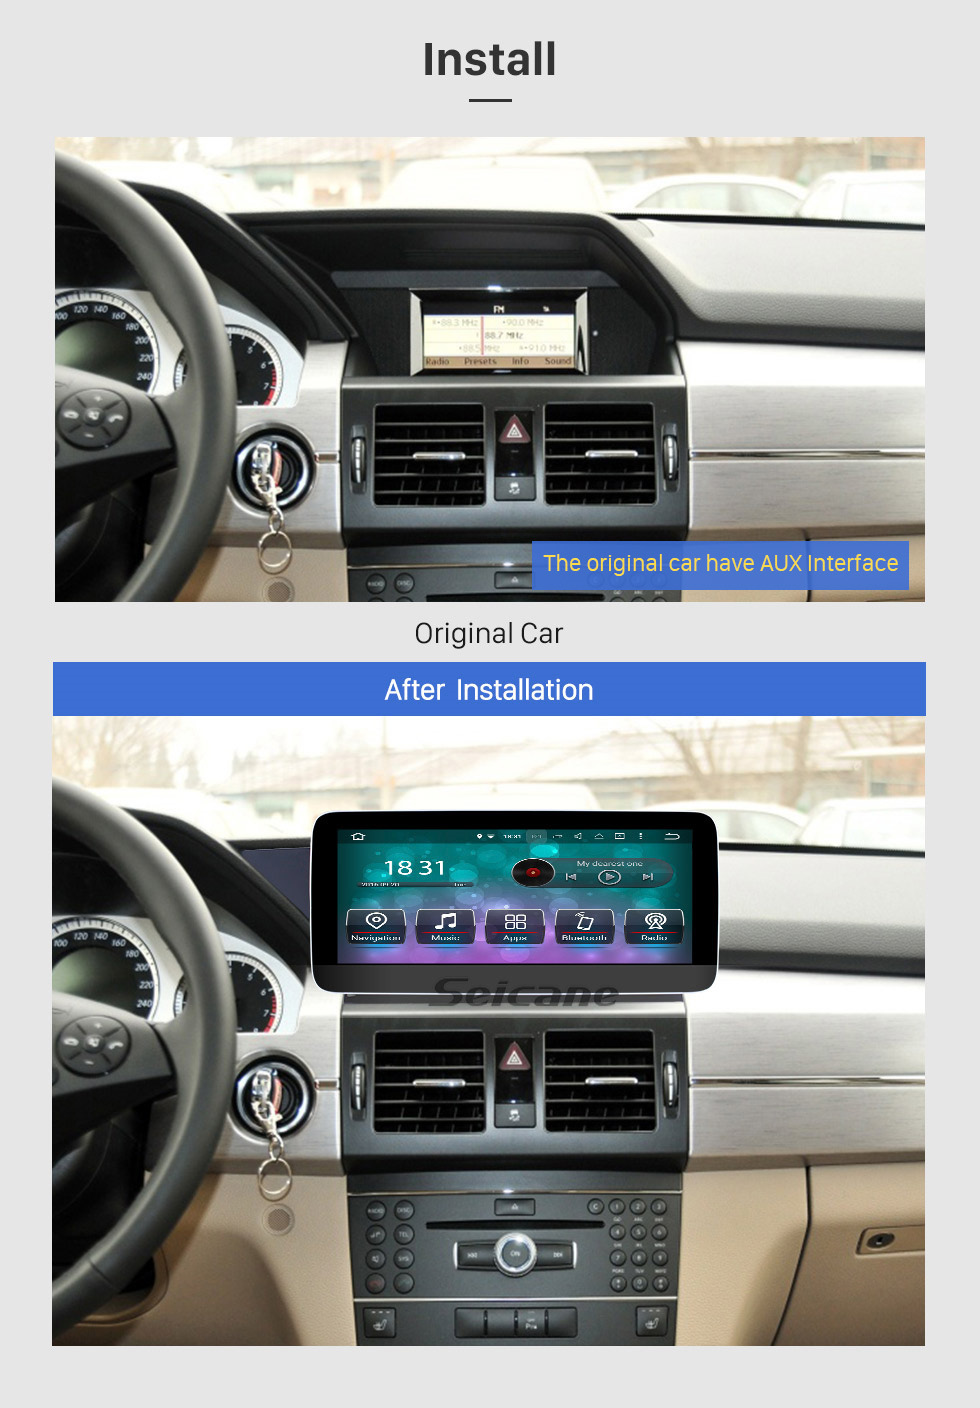 Seicane 10.25 inch Android 10.0 Car Stereo for Mercedes Benz GLK Class X204 GLK200 GLK250 2008-2015 Touchscreen Radio Bluetooth WIFI GPS Navigation 1080P Video Player SWC support DVR Rearview Camera